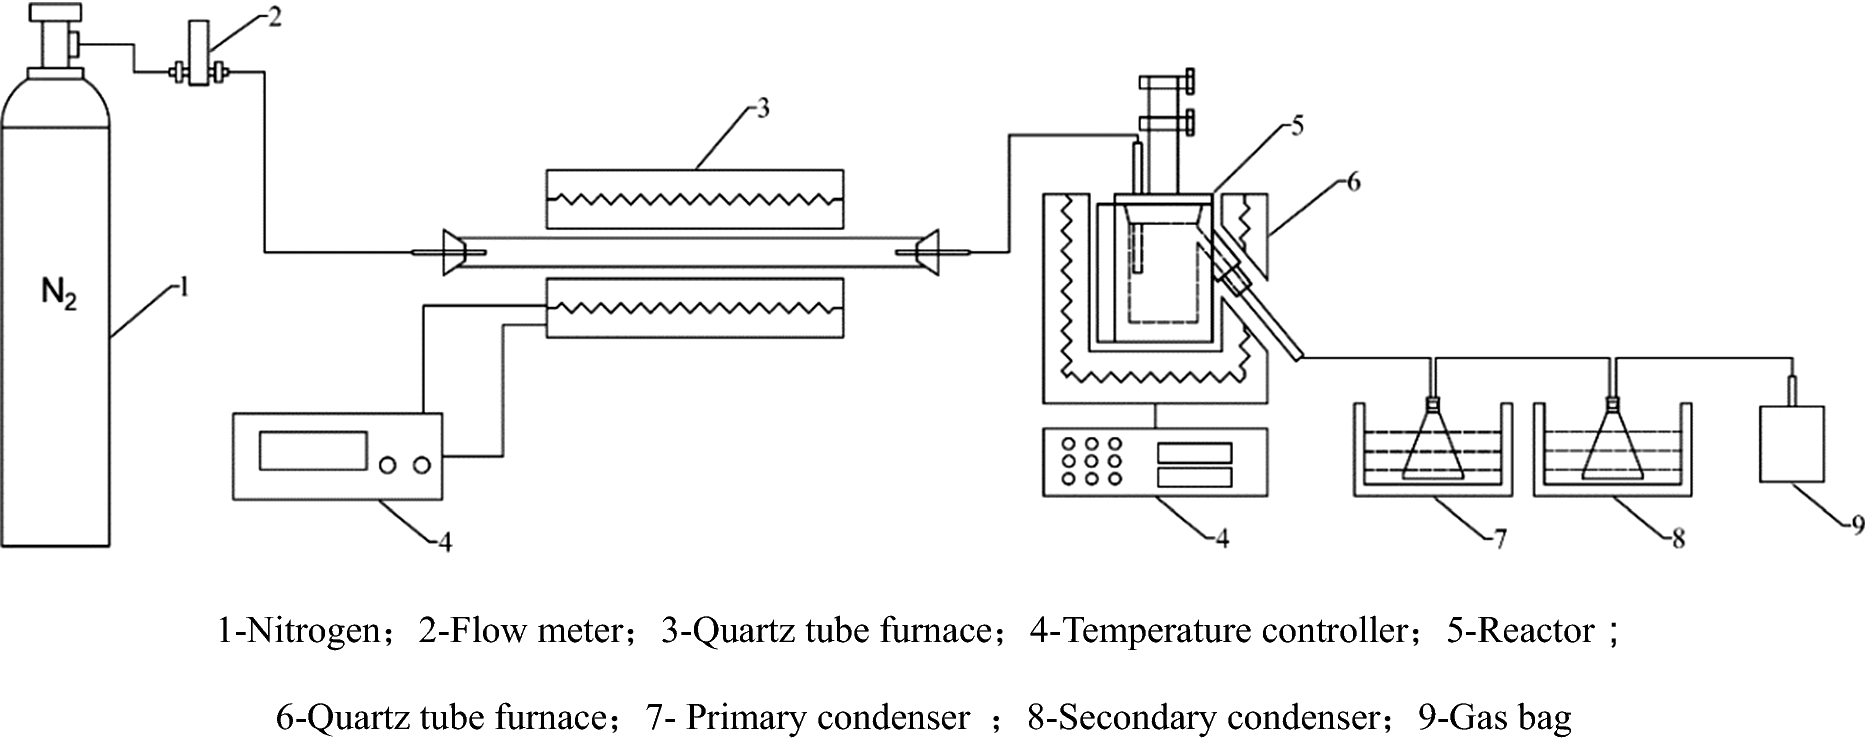 Influence Of Torrefaction Pretreatment On The Pyrolysis